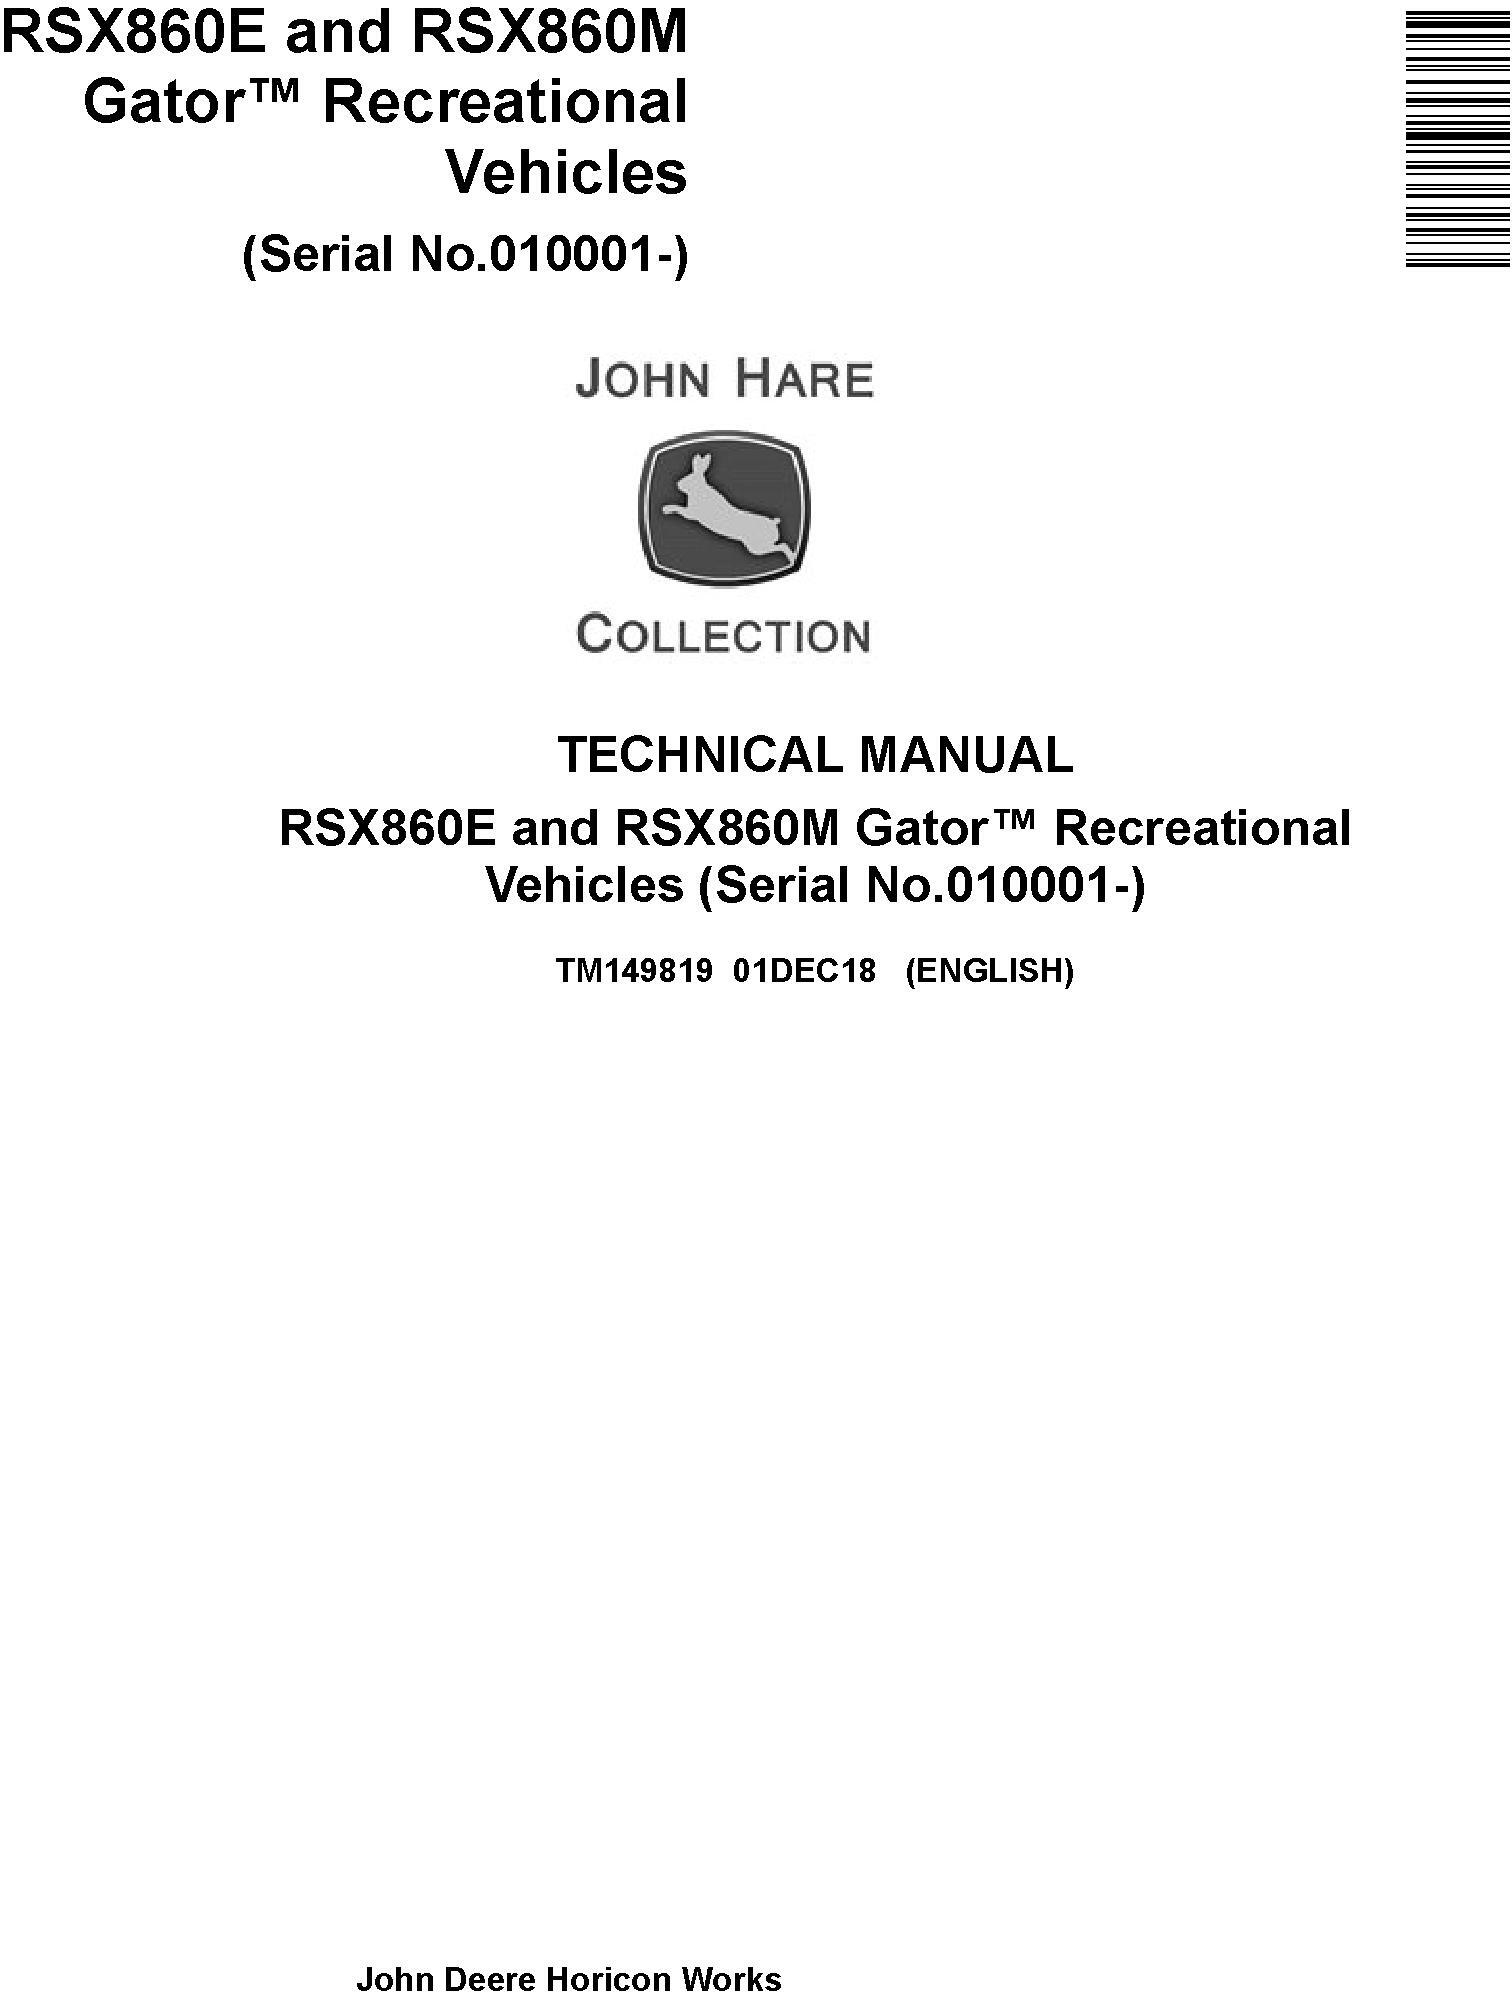 John Deere RSX860E and RSX860M Gator Recreational Vehicles (SN.010001-) Technical Manual (TM149819) - 19298